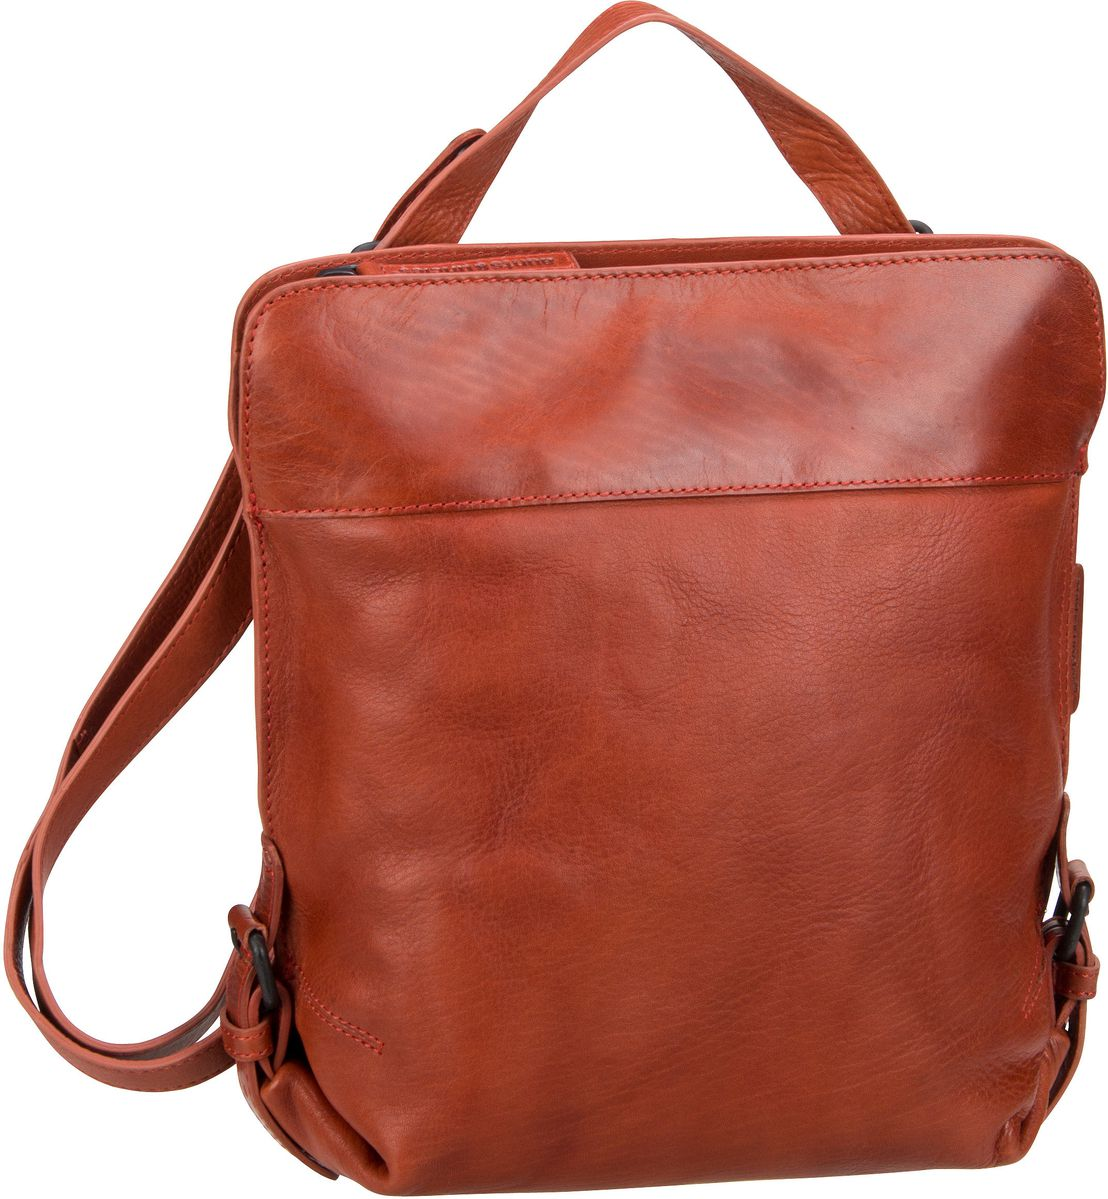 Rucksack / Daypack Mrs. Crumble Cookie Burnt Orange